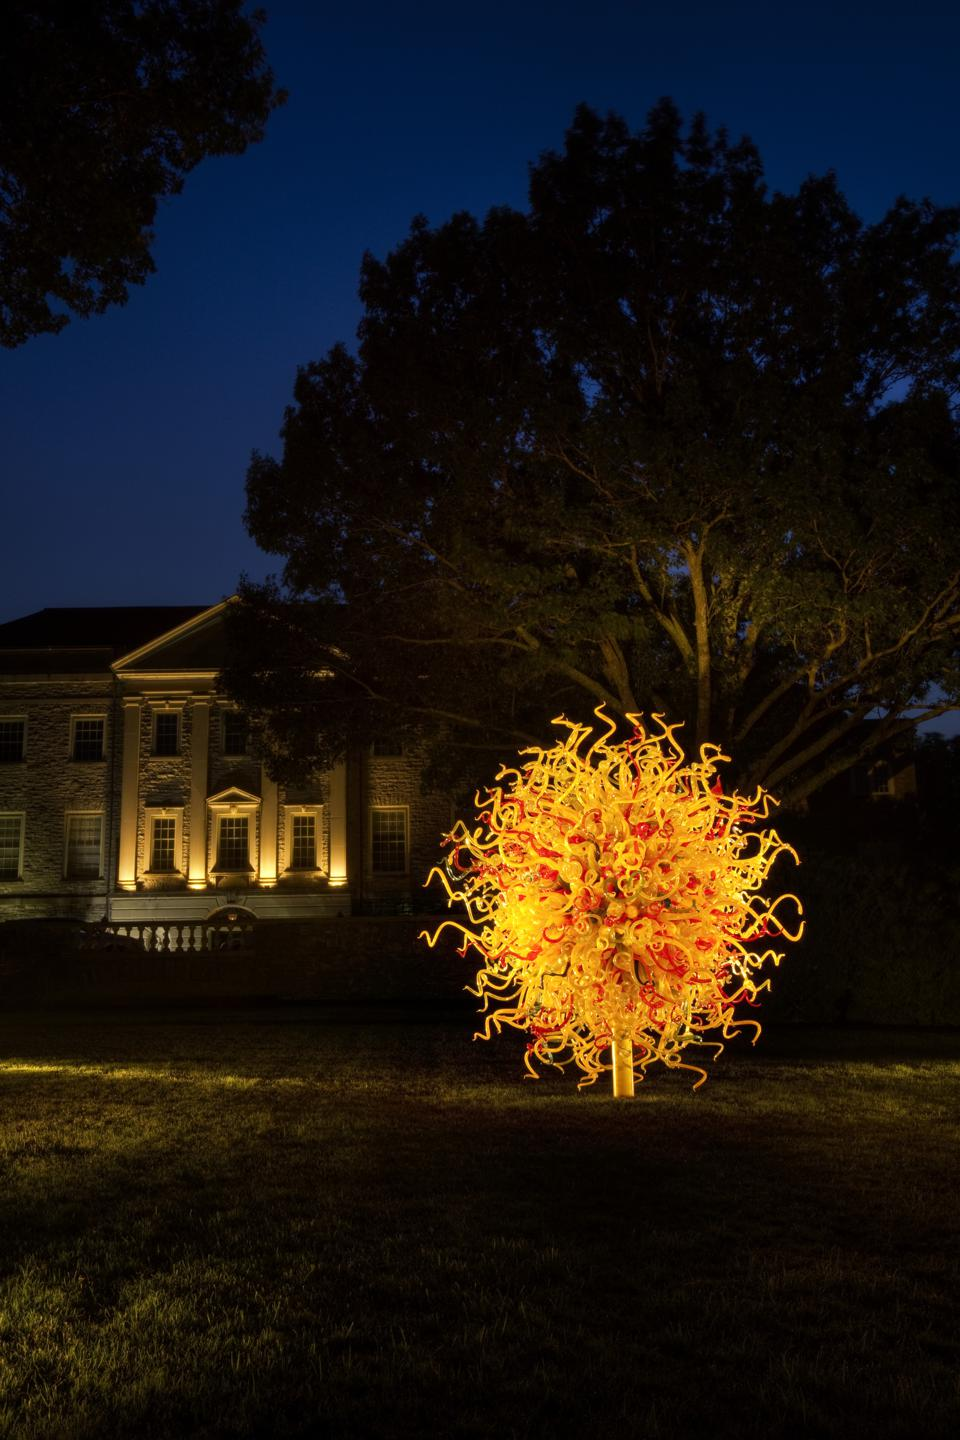 Dale Chihuly ″The Sun,″ 2003 14½ x 14 x 14.' Cheekwood Botanical Garden and Museum of Art, Nashville, installed 2010.